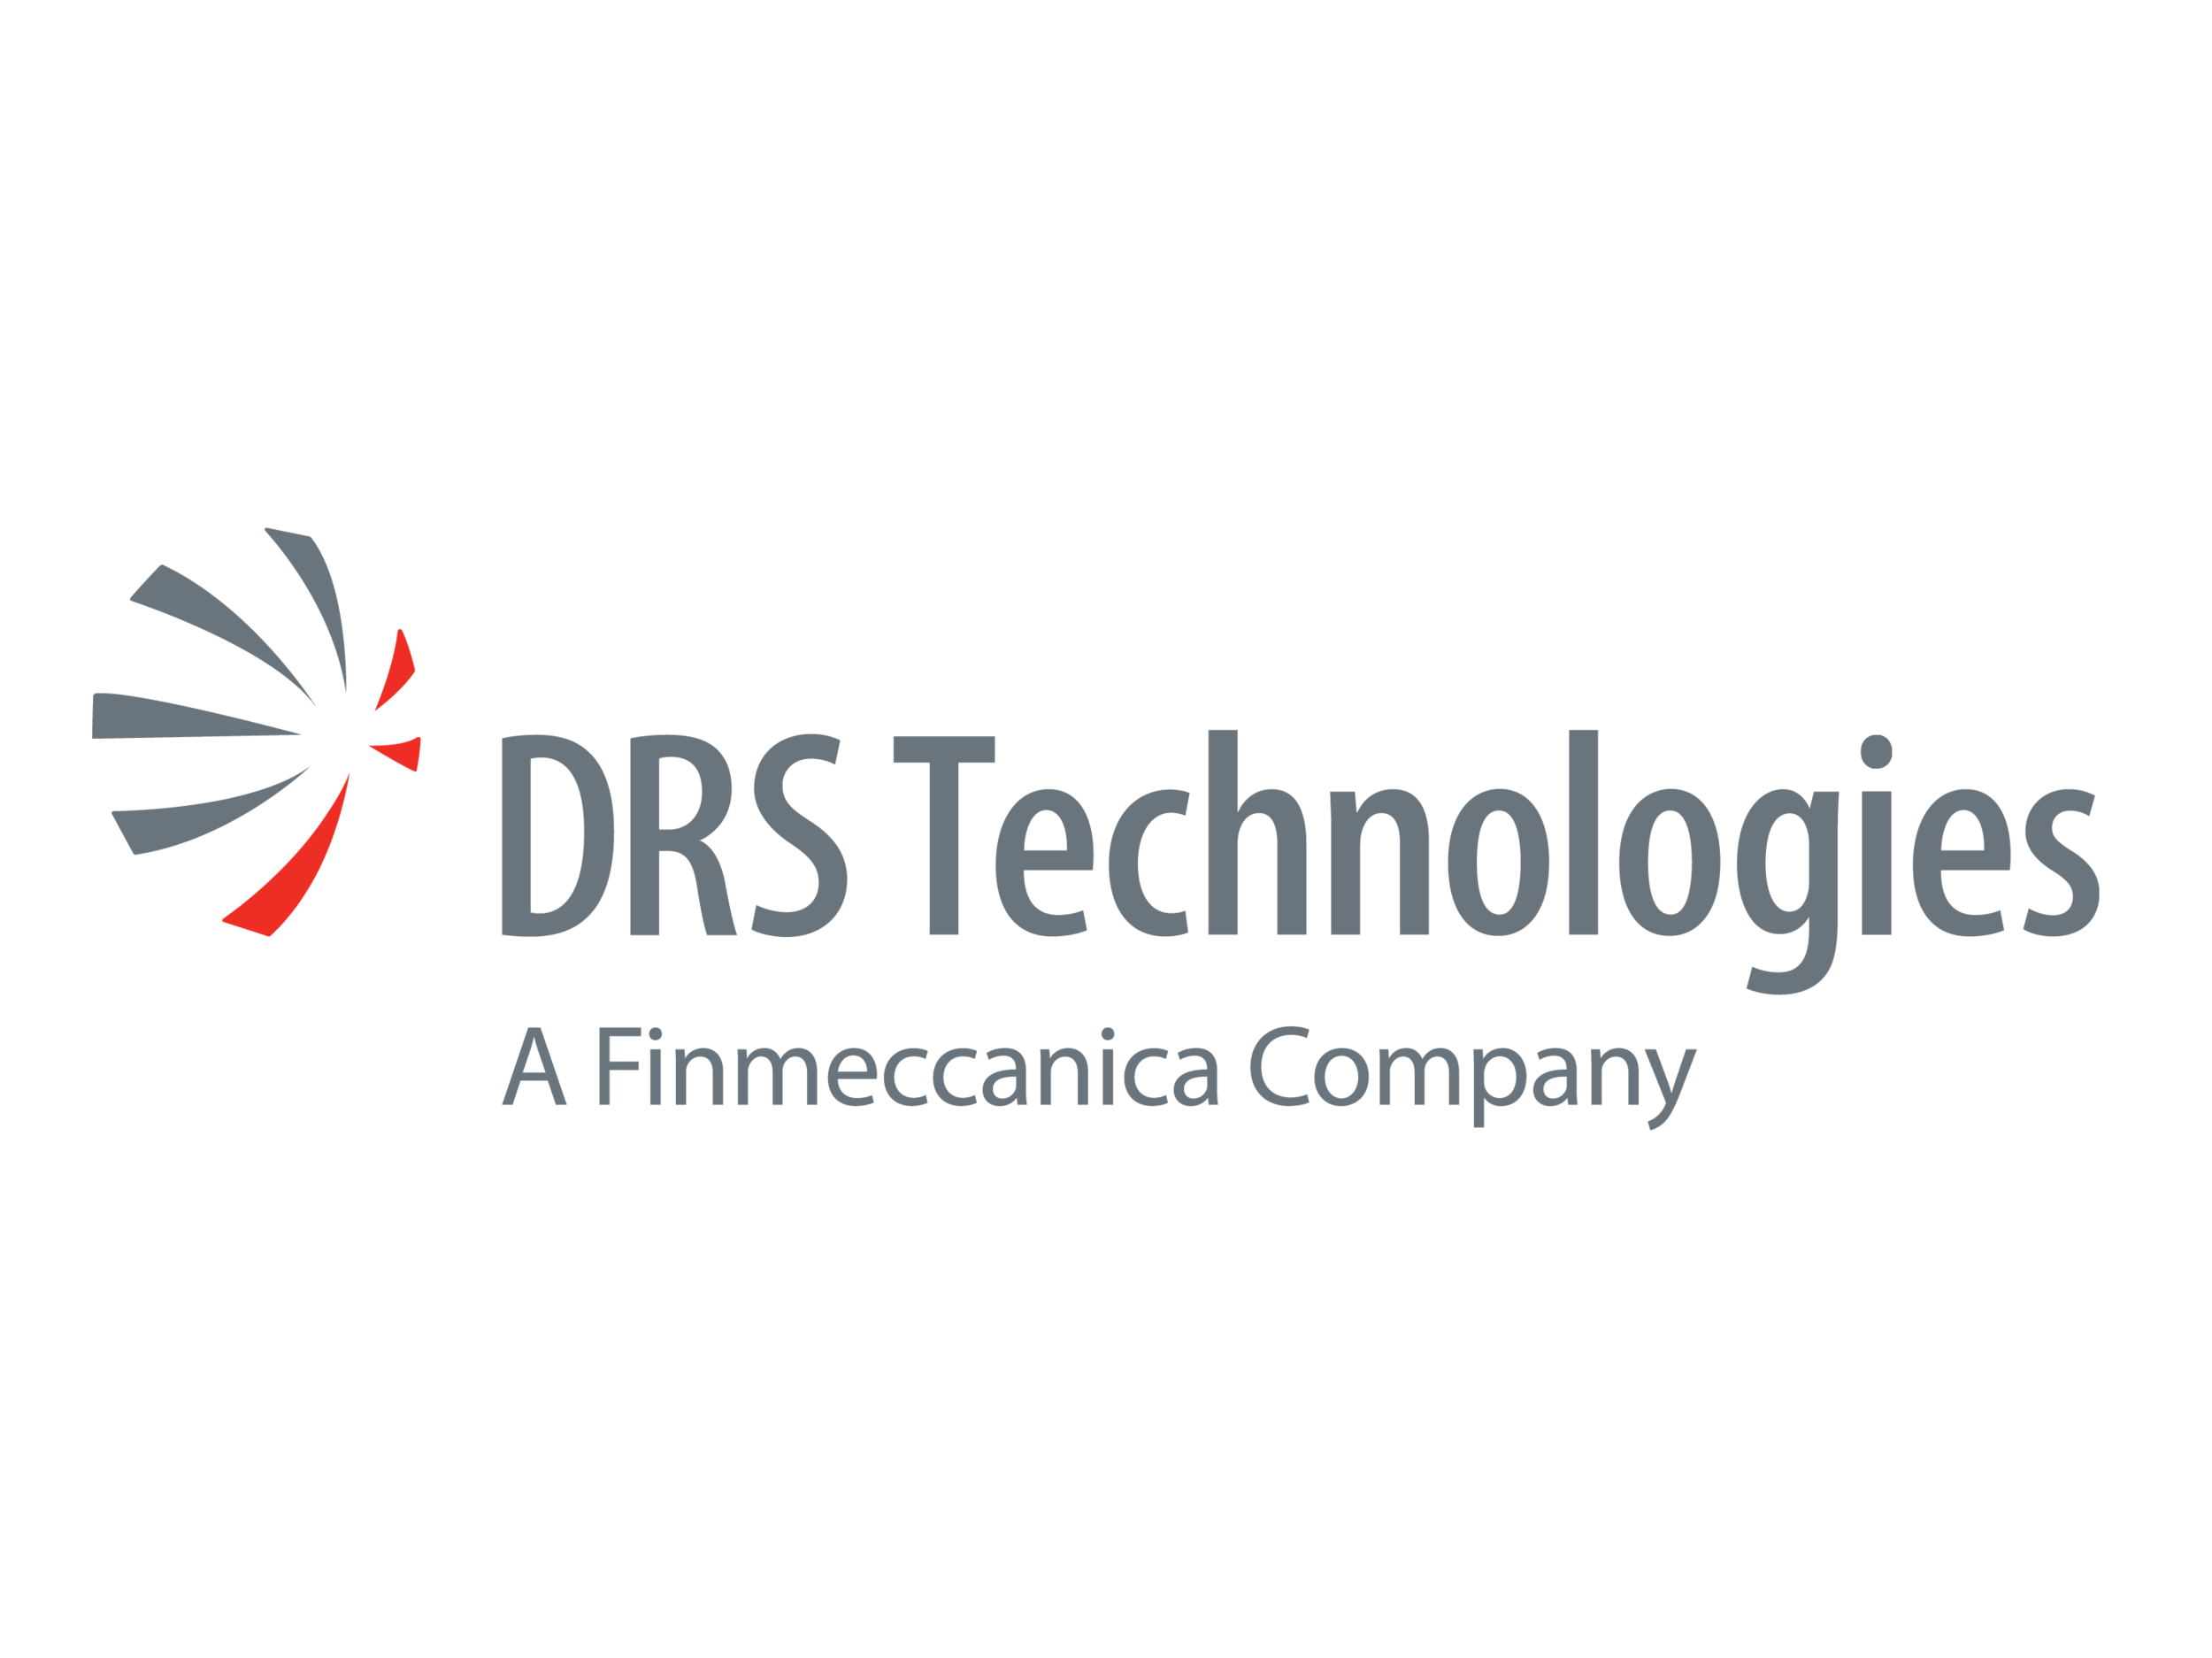 DRS Technologies_Color.png